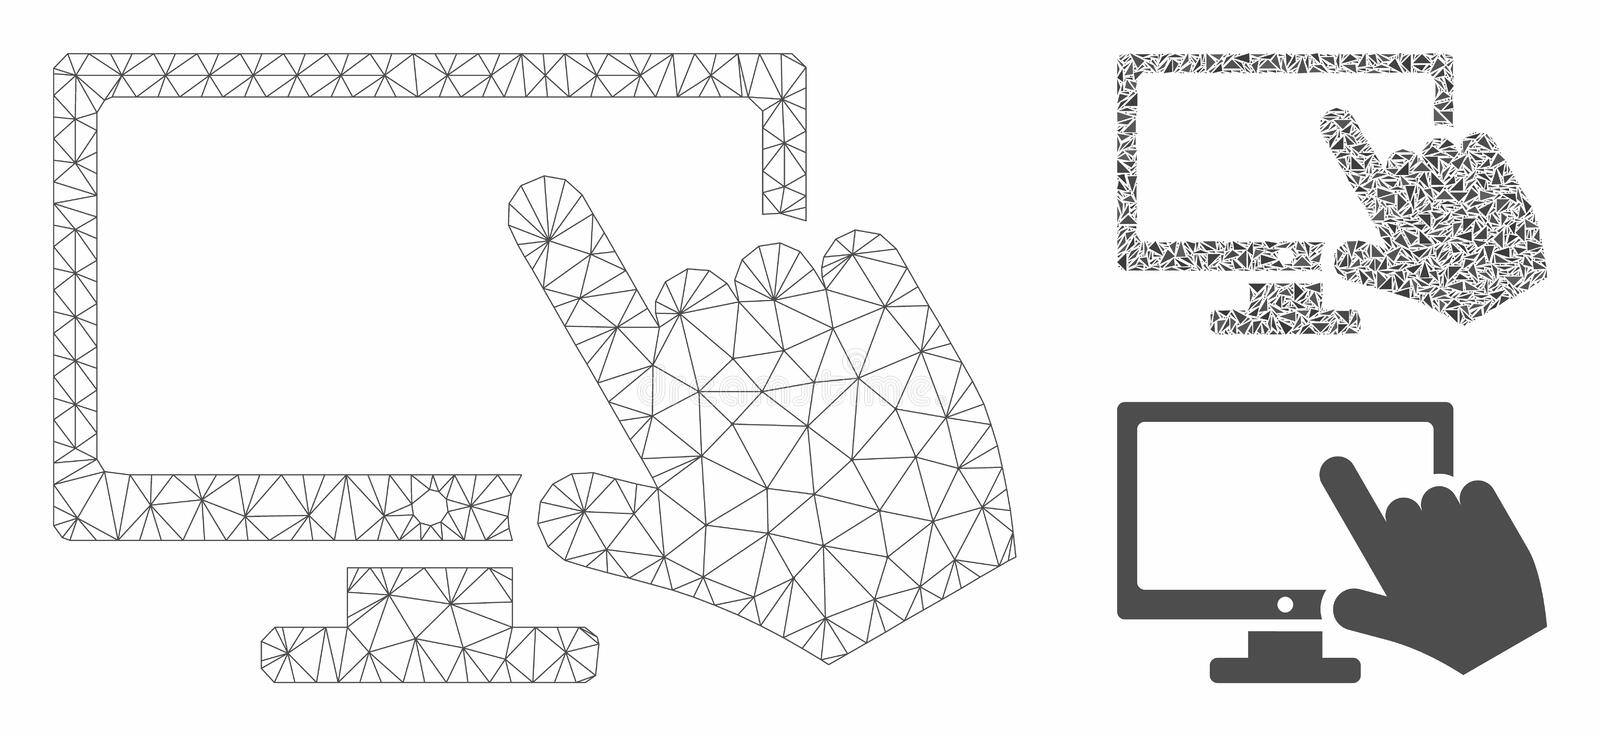 Screen Point Vector Mesh Carcass Model and Triangle Mosaic Icon. Mesh screen point model with triangle mosaic icon. Wire carcass triangular mesh of screen point vector illustration